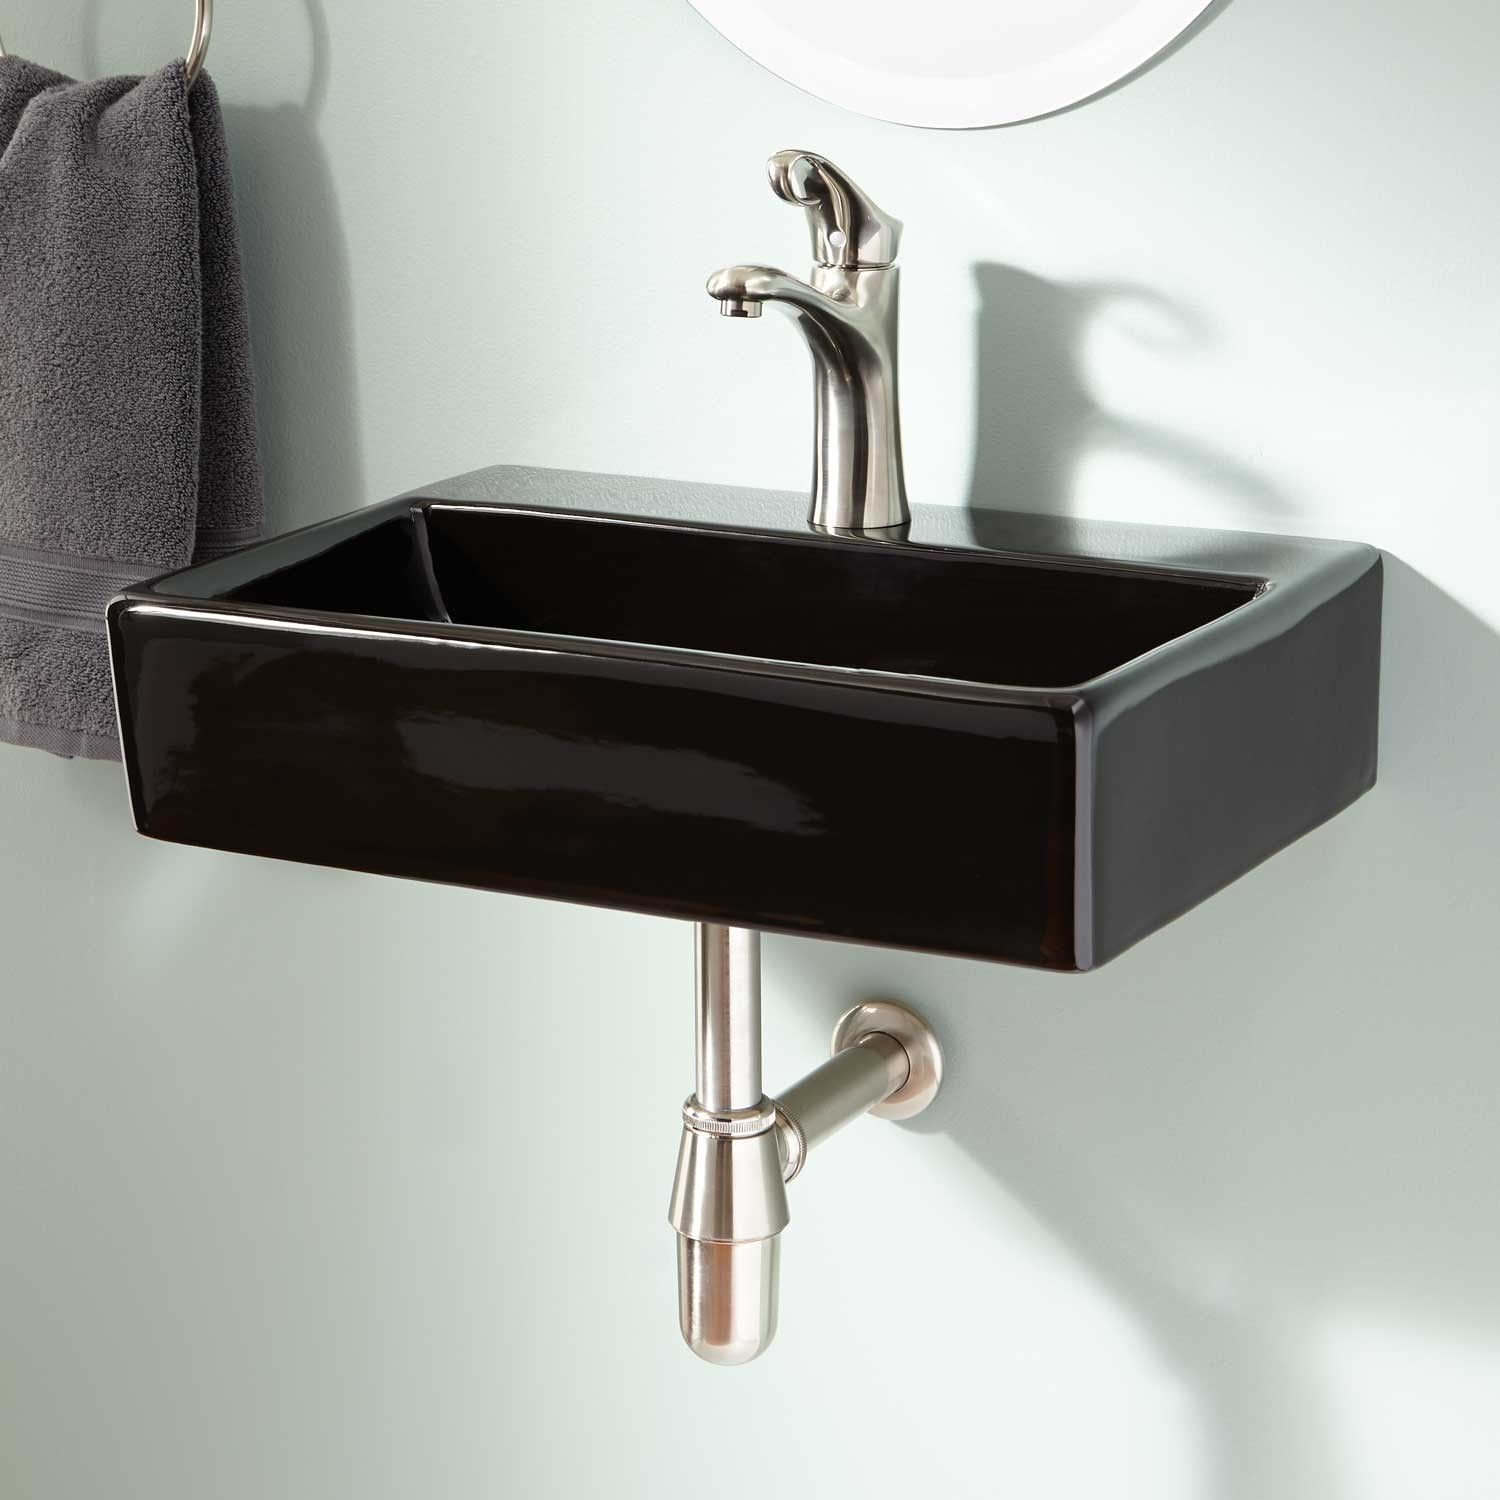 Rogge Wall Mount Bathroom Sink Bathroom Sink Decor Bathroom Sink Design Wall Mounted Bathroom Sinks